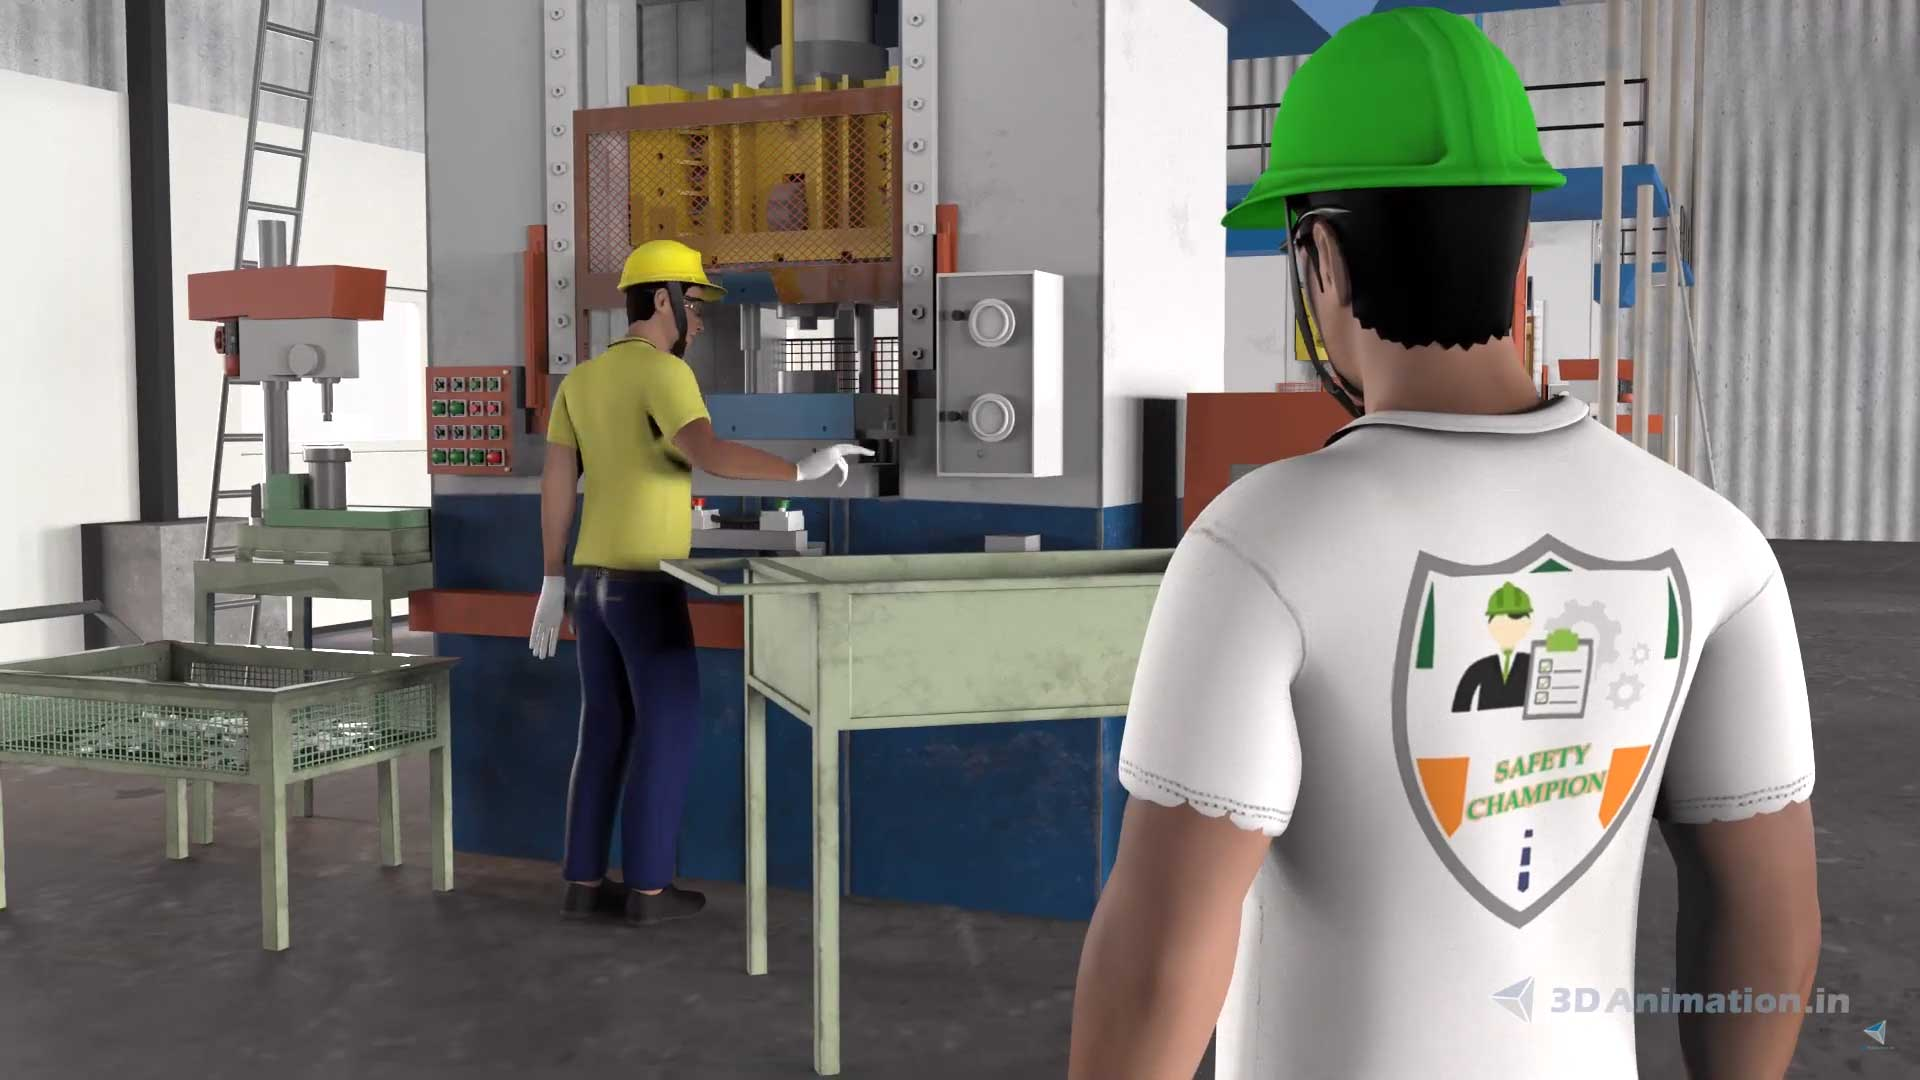 Machine safety video